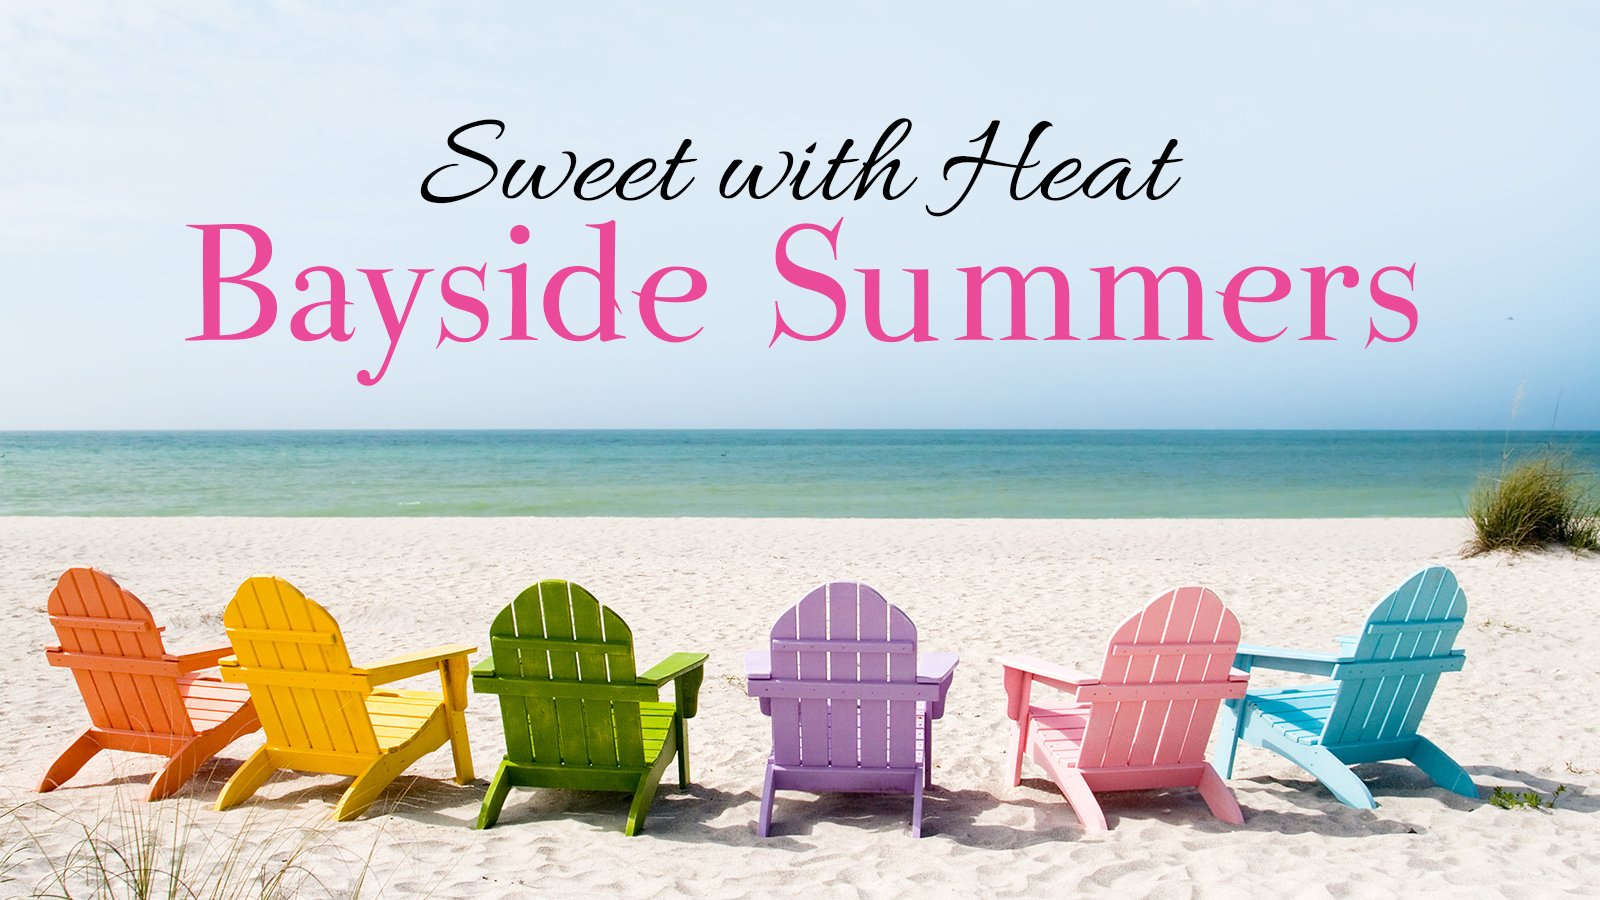 Sweet with Heat Bayside Summers